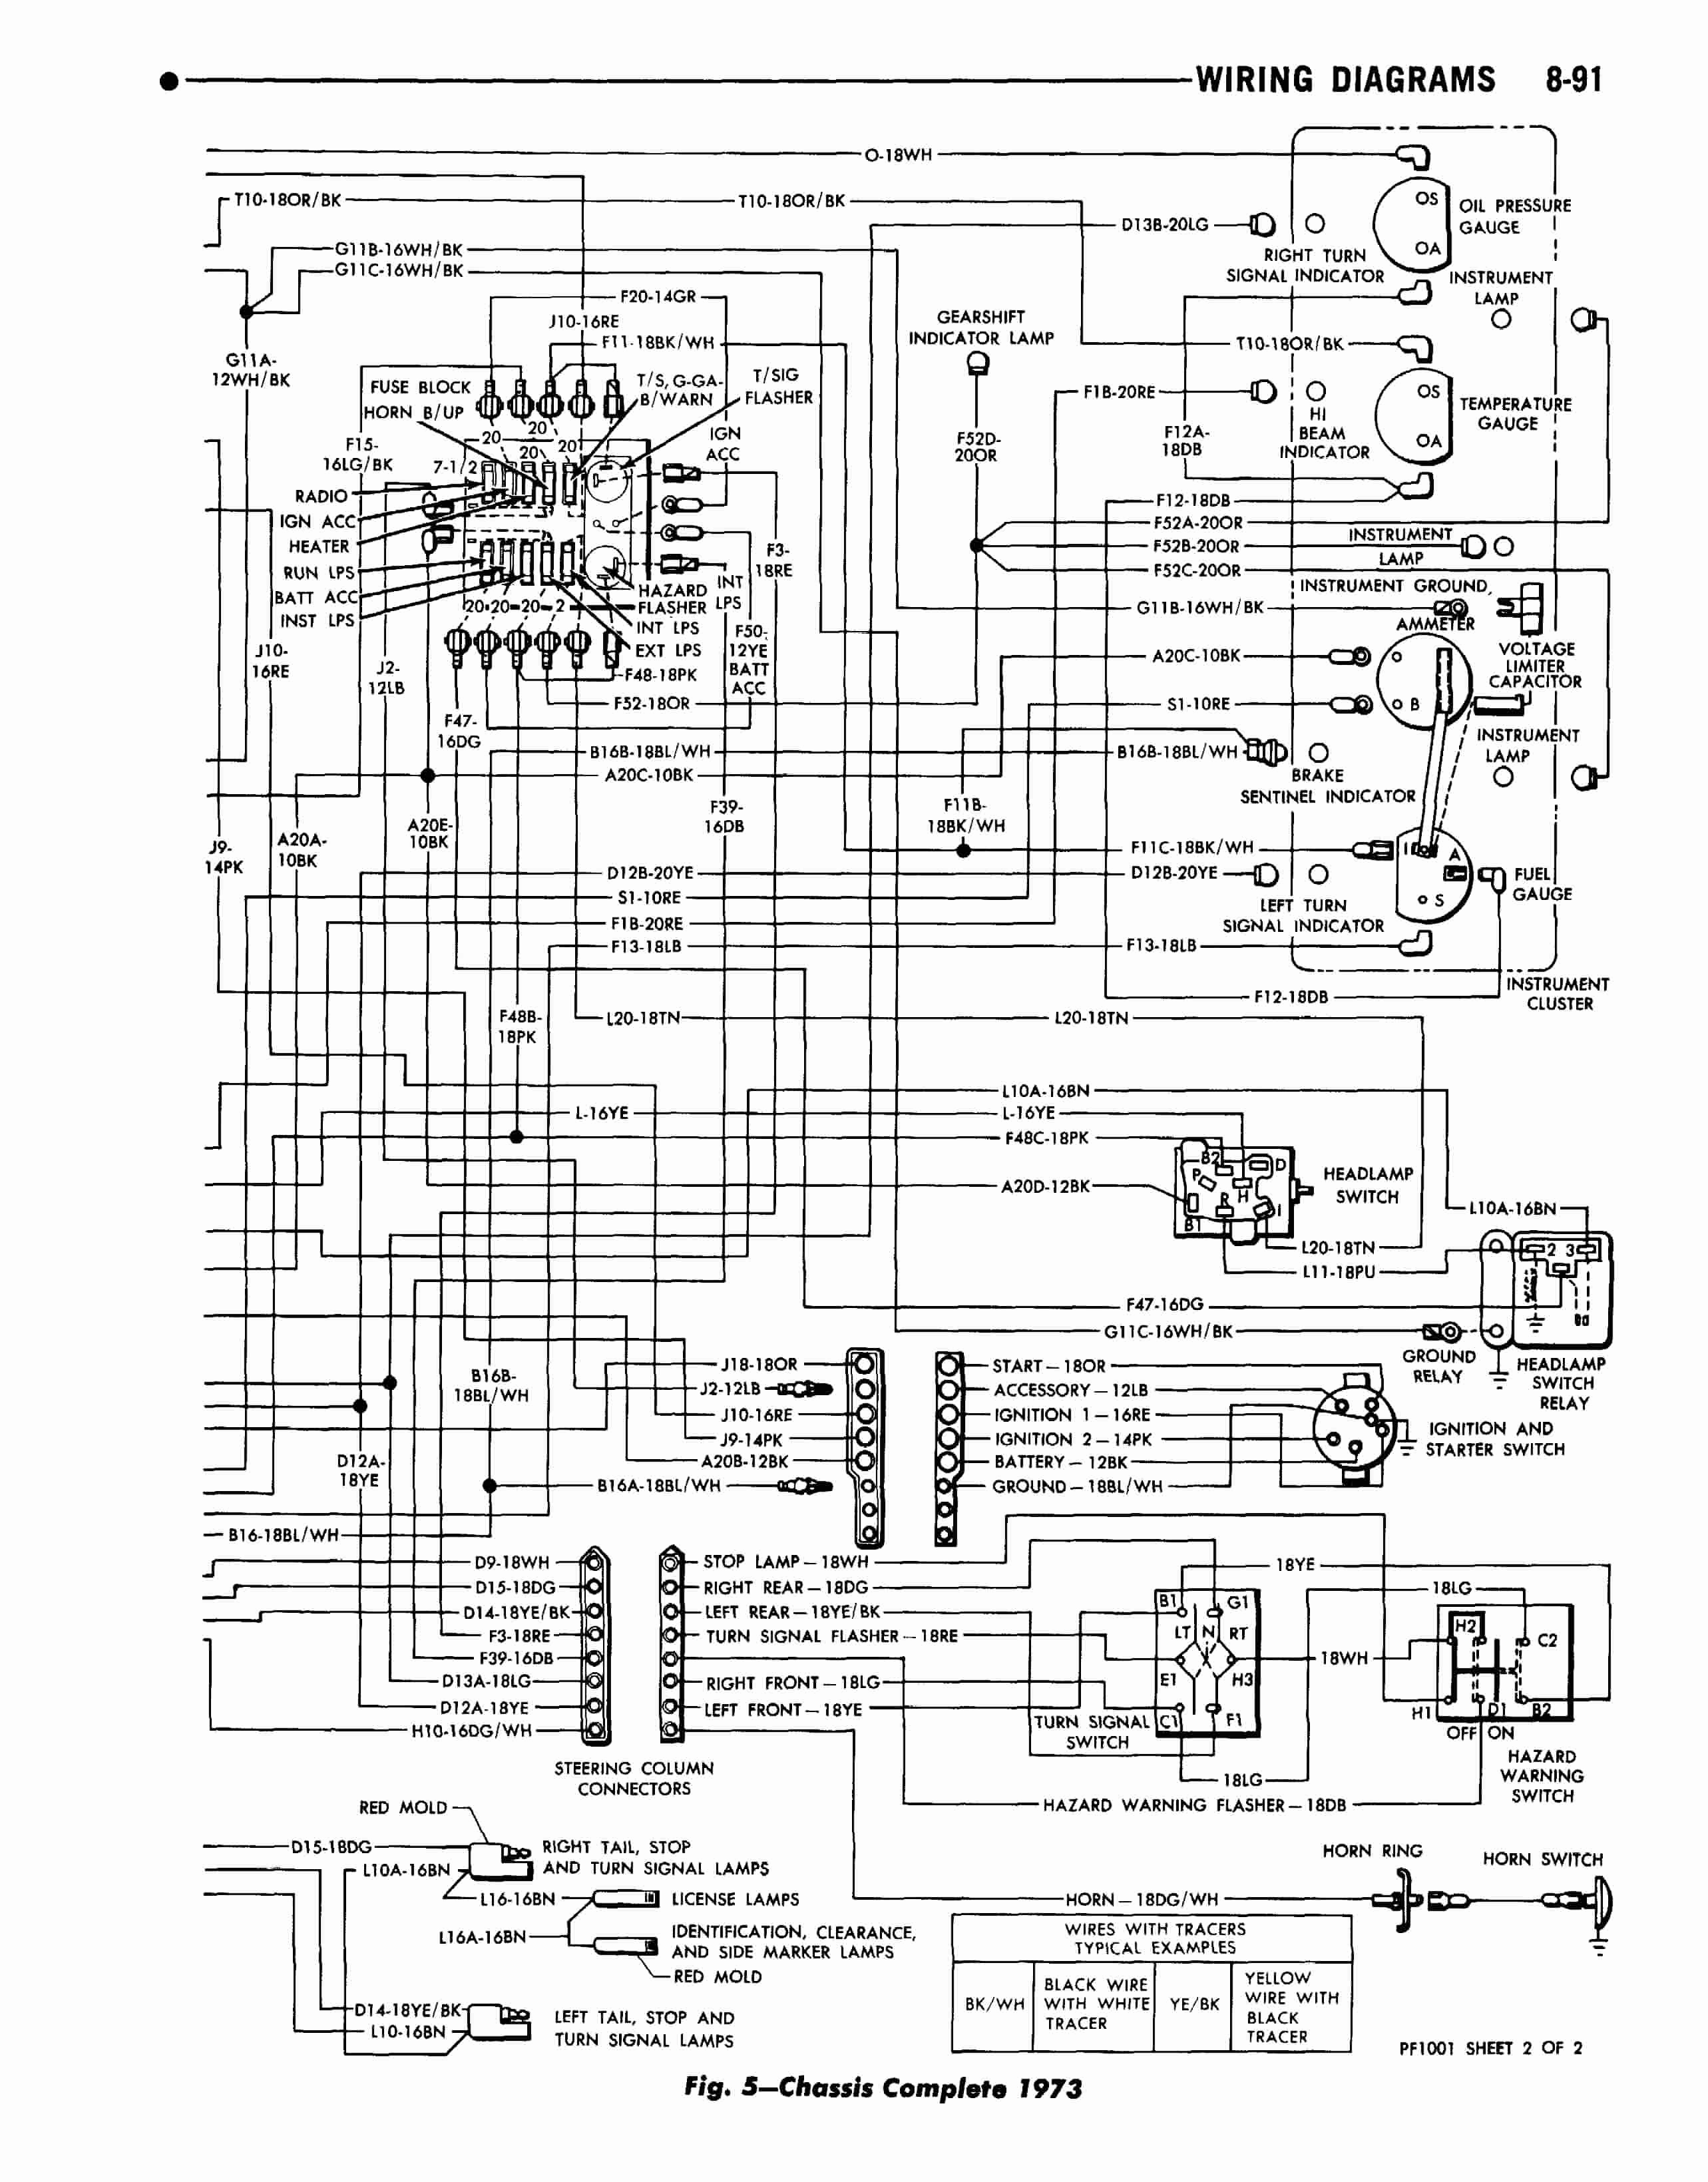 Monaco Rv Wiring Diagrams - Wiring Diagram Expert on 1970 chevy brochure, 1970 chevy fuel tank, 1970 chevy 454 engine, 1970 chevy headlight switch, 1970 chevy brakes, 1970 chevy engine swap, 1970 chevelle wire diagram, 1970 chevy charging system, 1970 chevelle fuse block diagram, 1970 chevy solenoid, truck diagram, 1970 chevy camaro yellow, 1970 gm steering column diagram, 1970 chevy battery, 1970 chevy air cleaner, 1970 chevy pickup grille, 1970 mustang fuse box diagram, 1970 chevy truck parts, 1970 chevy voltage regulator, 1970 chevy starter wiring,